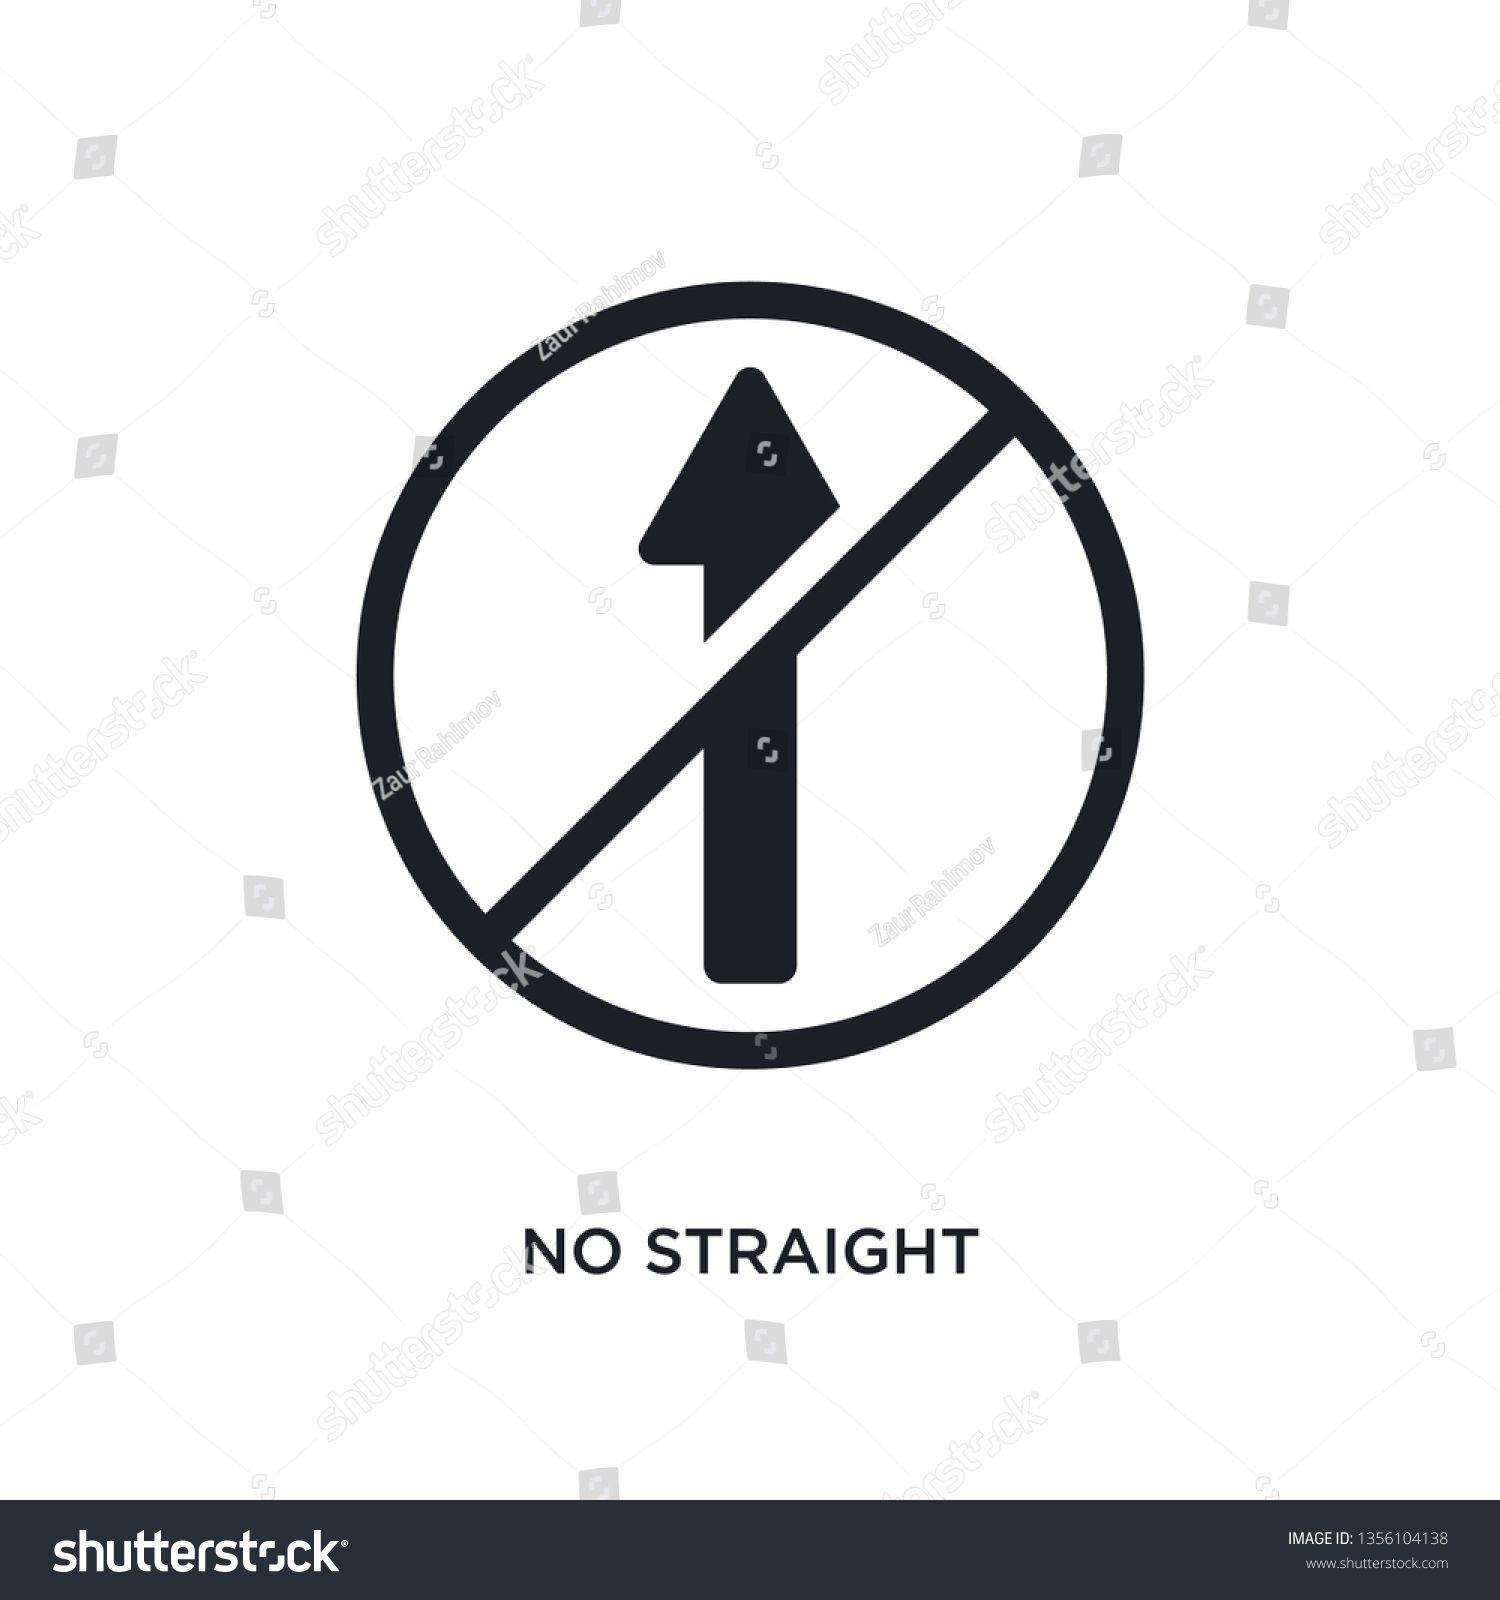 black no straight isolated vector icon simple element illustration from traffic signs concept vector icons no straight editable logo symbol design on white background can...